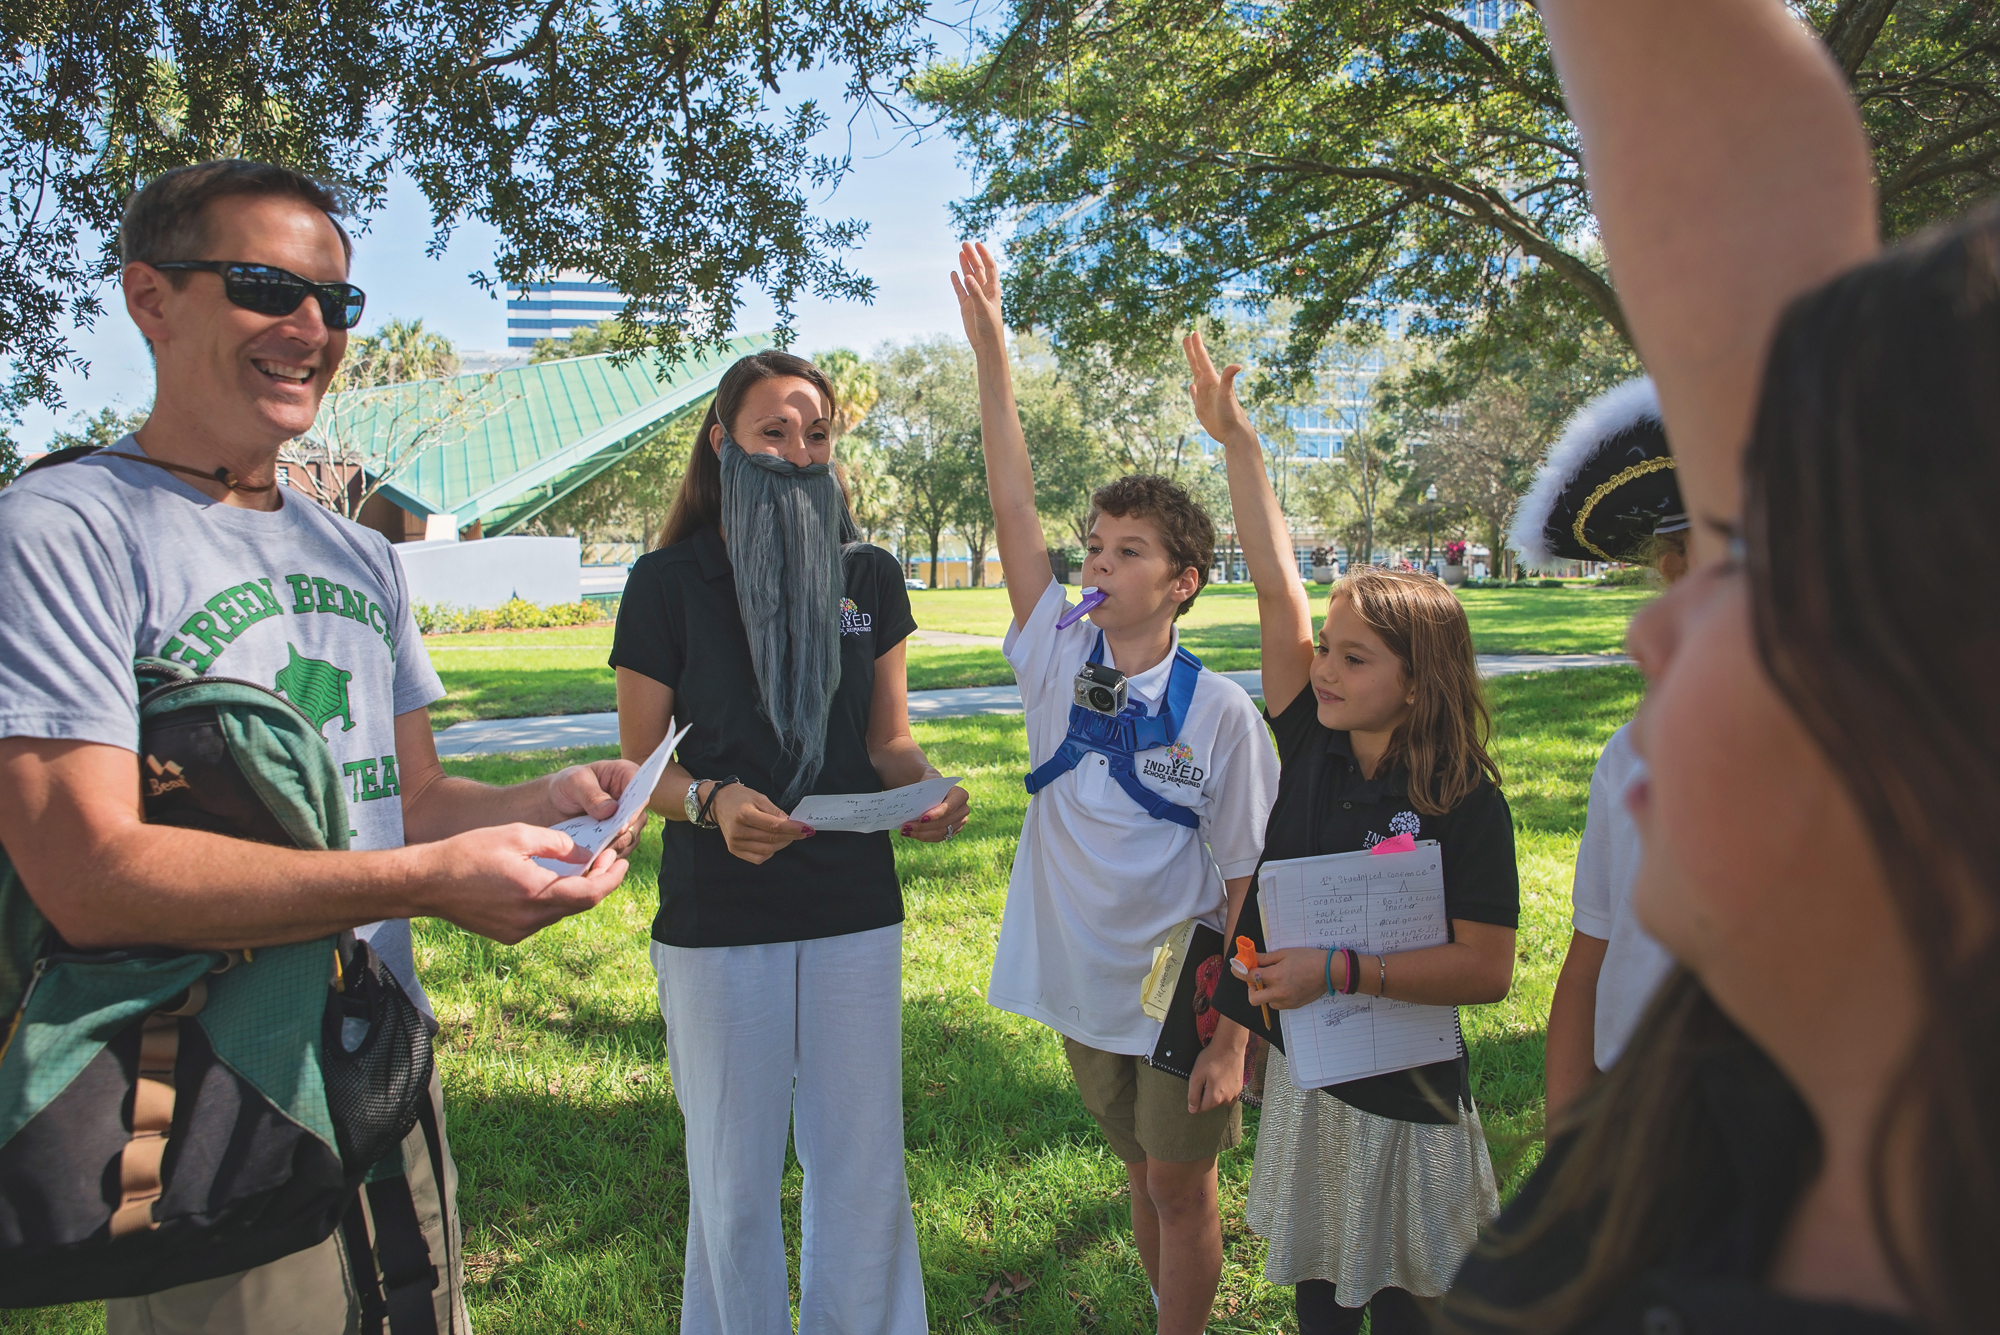 Indi-ED class learning about local history in Downtown St Pete. Photo by Kelly Nash Photography.